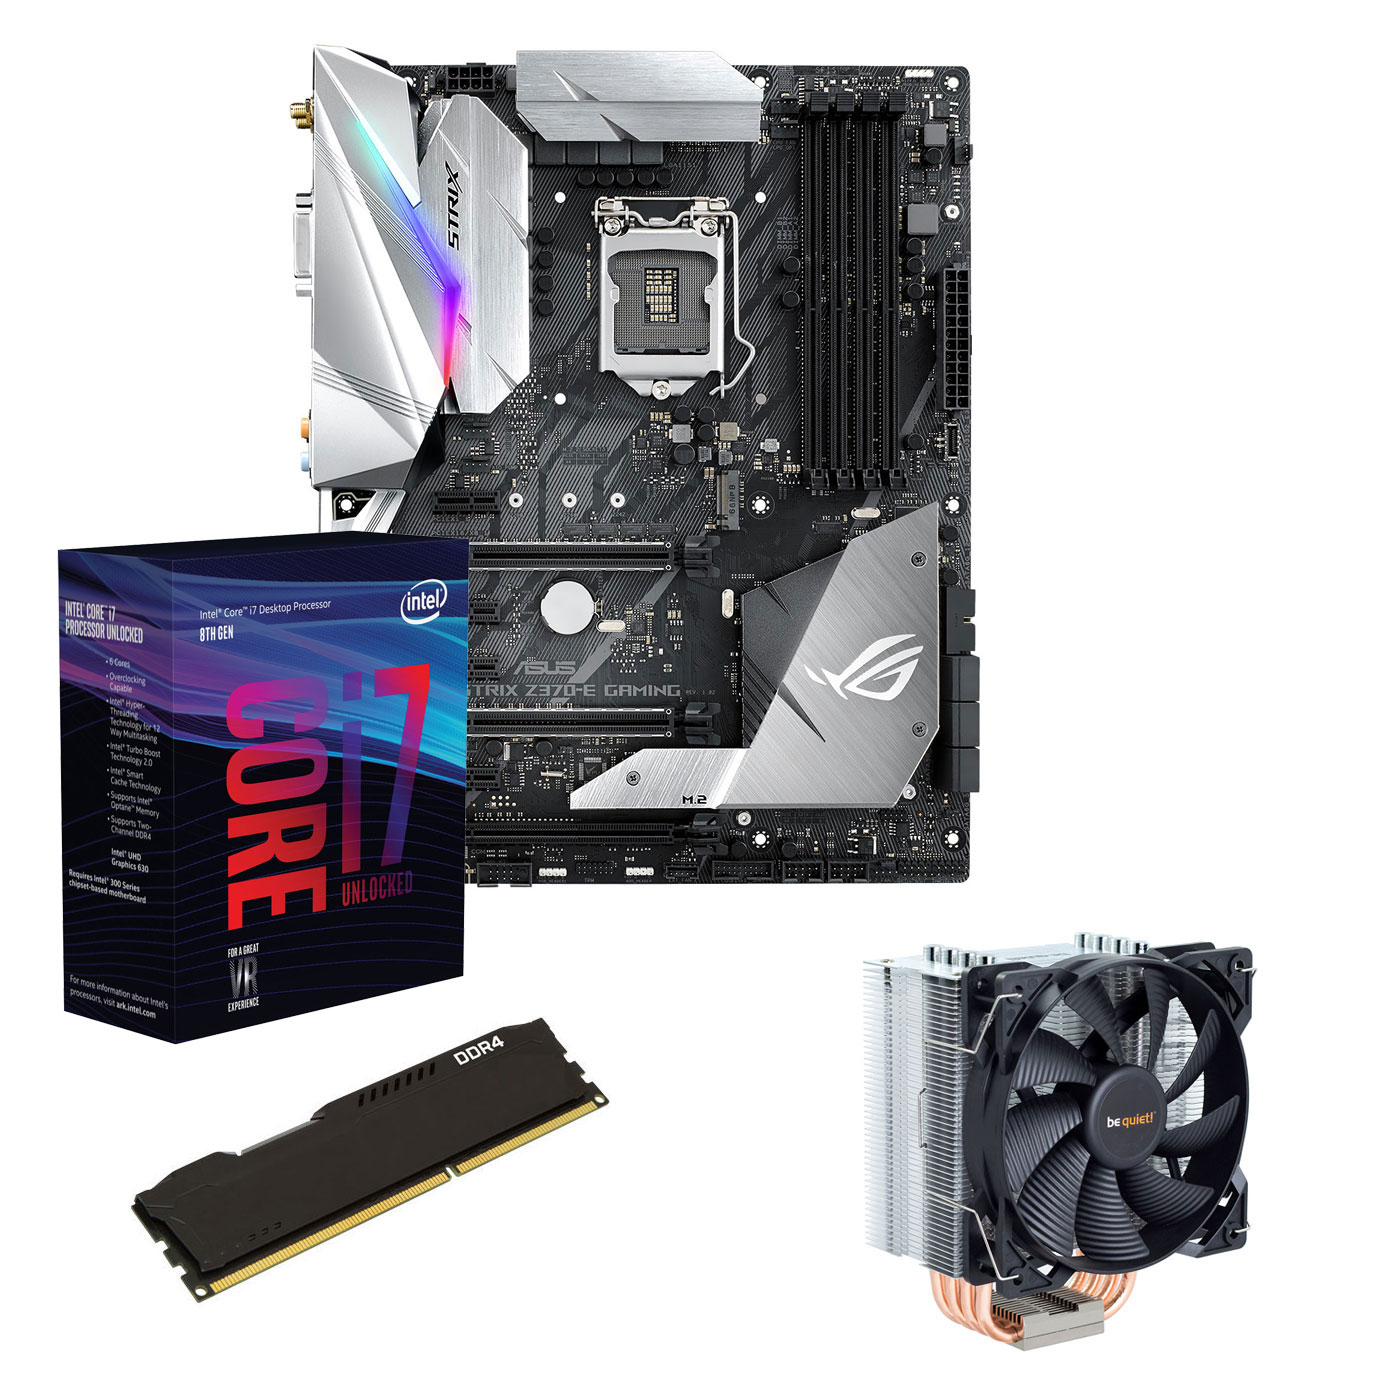 Kit upgrade PC Kit Upgrade PC Core i7K ASUS ROG STRIX Z370E GAMING 8 Go Carte mère Socket 1151 Intel Z370 Express + CPU Intel Core i7-8700K (3.7 GHz) + RAM 8 Go DDR4